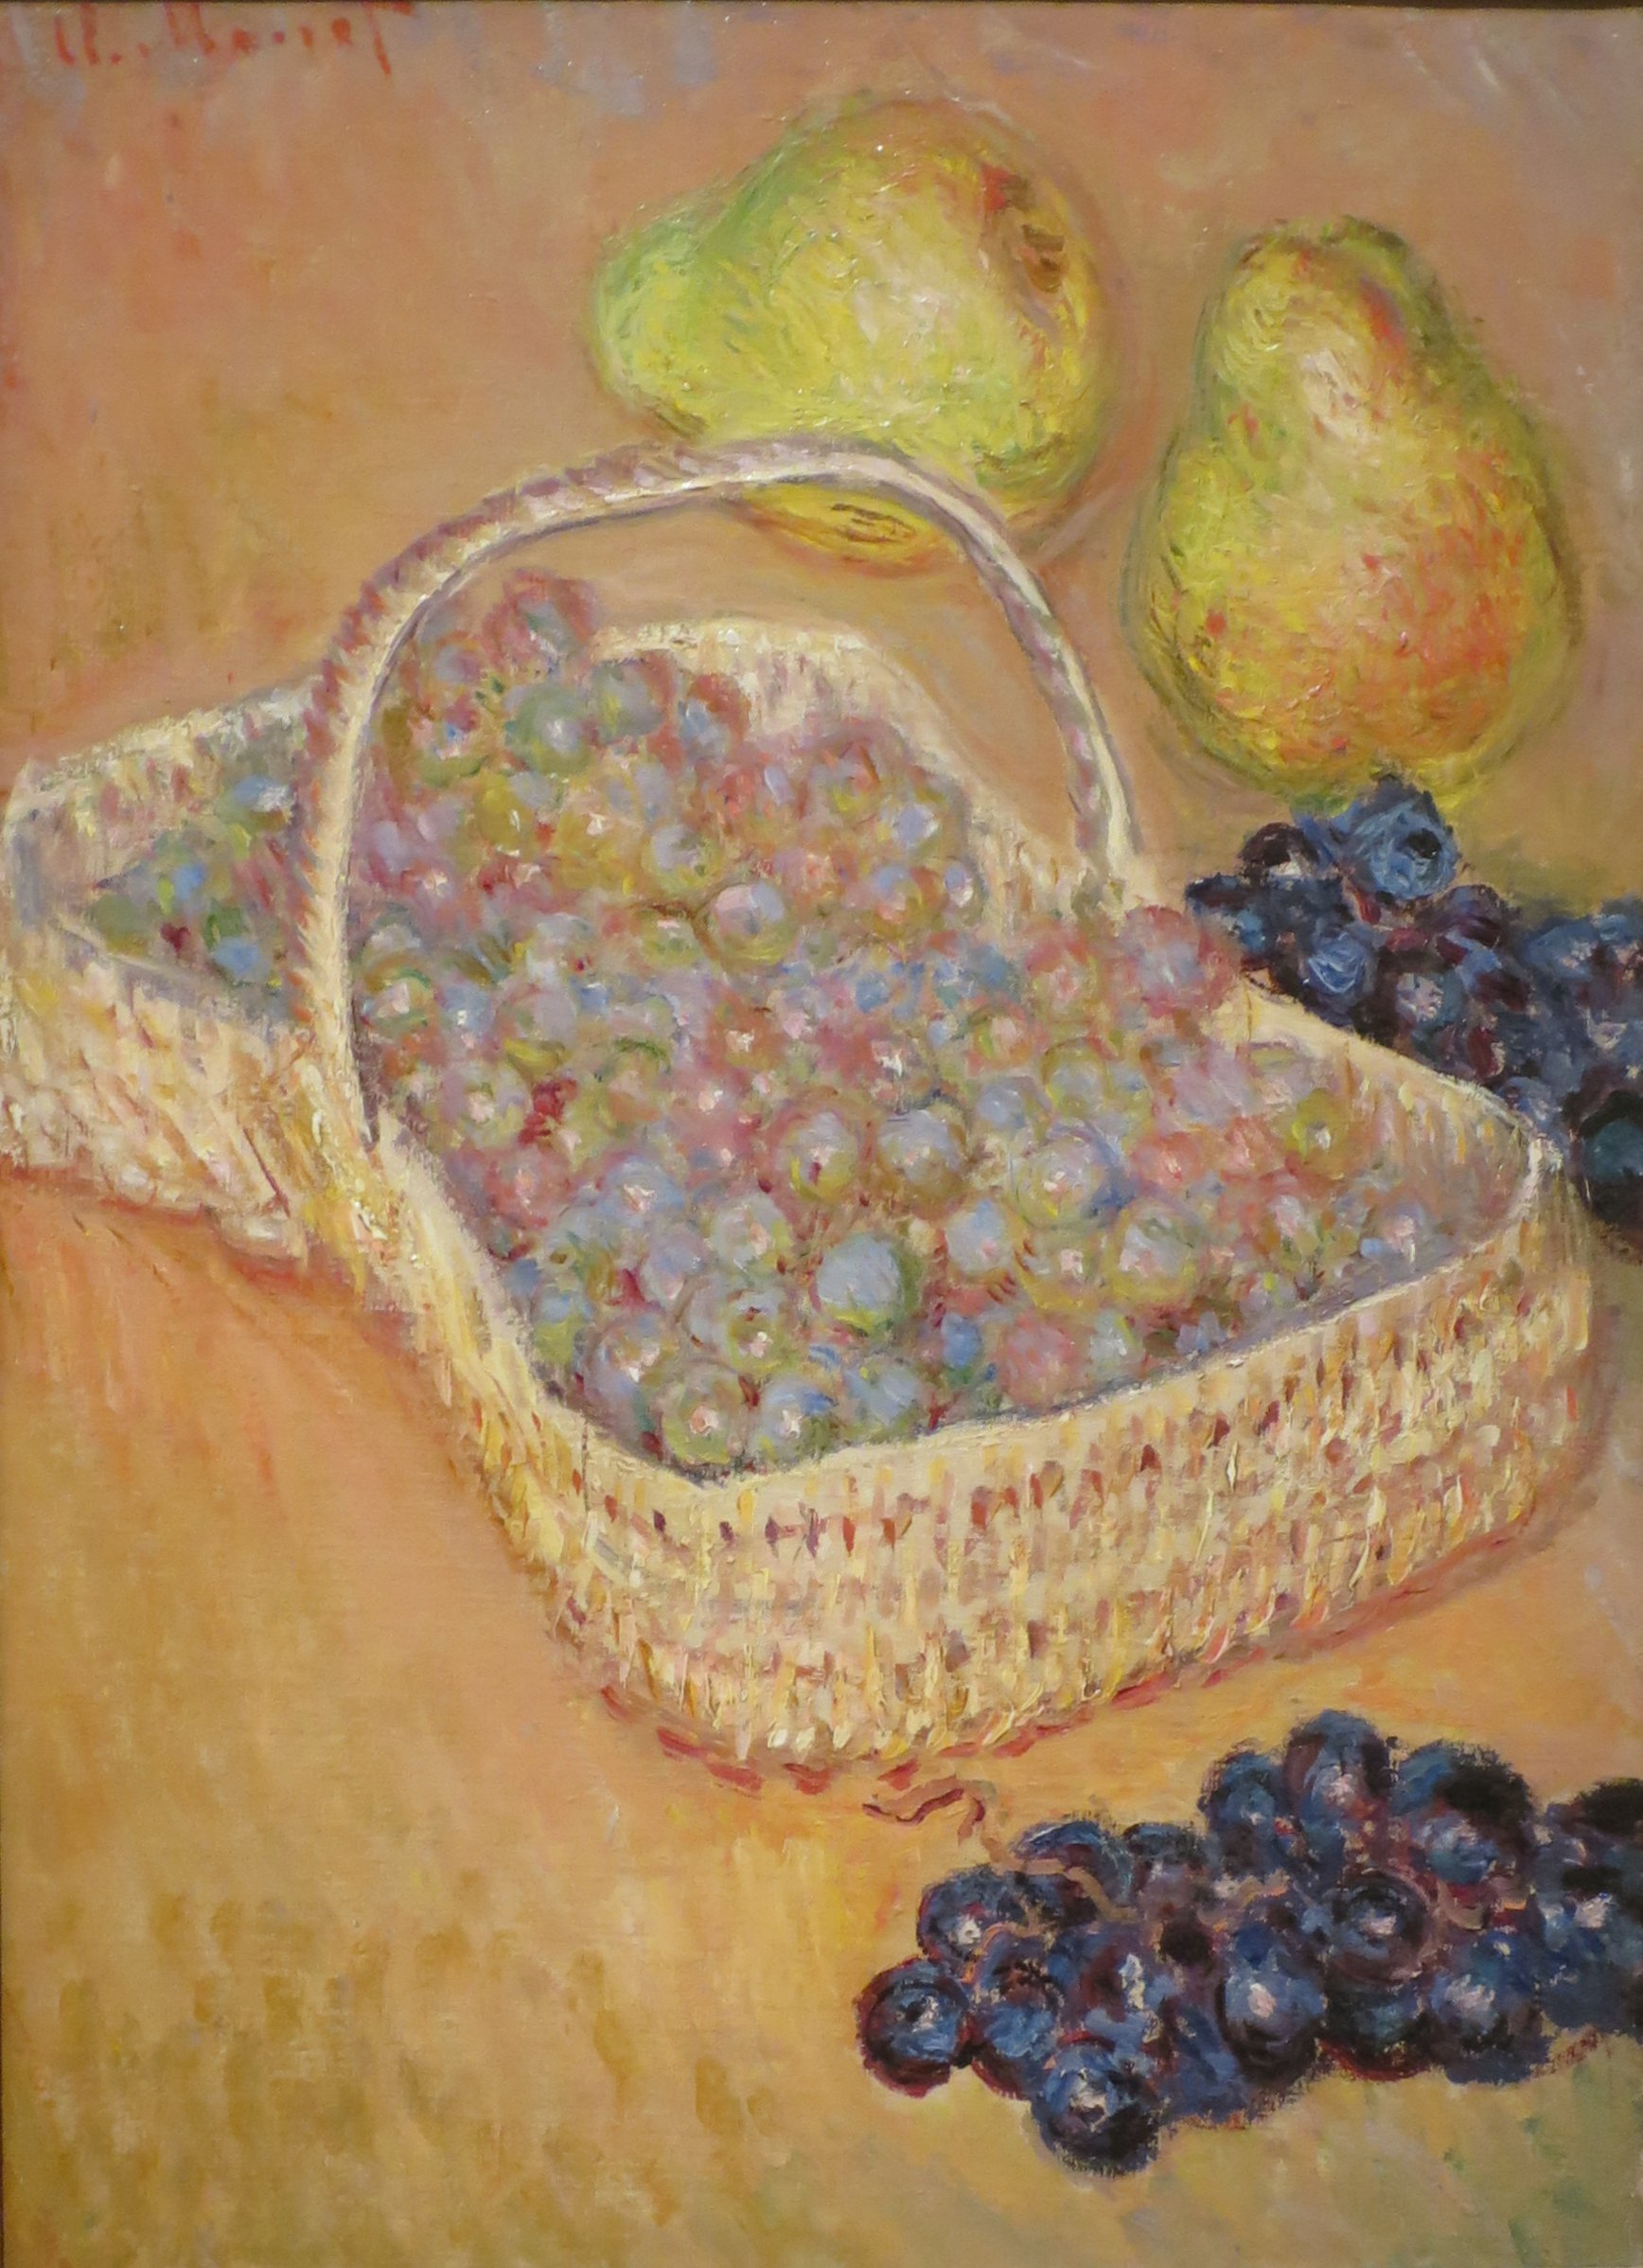 File:Basket of Grapes by Claude Monet, Columbus Museum of Art .JPG -  Wikimedia Commons